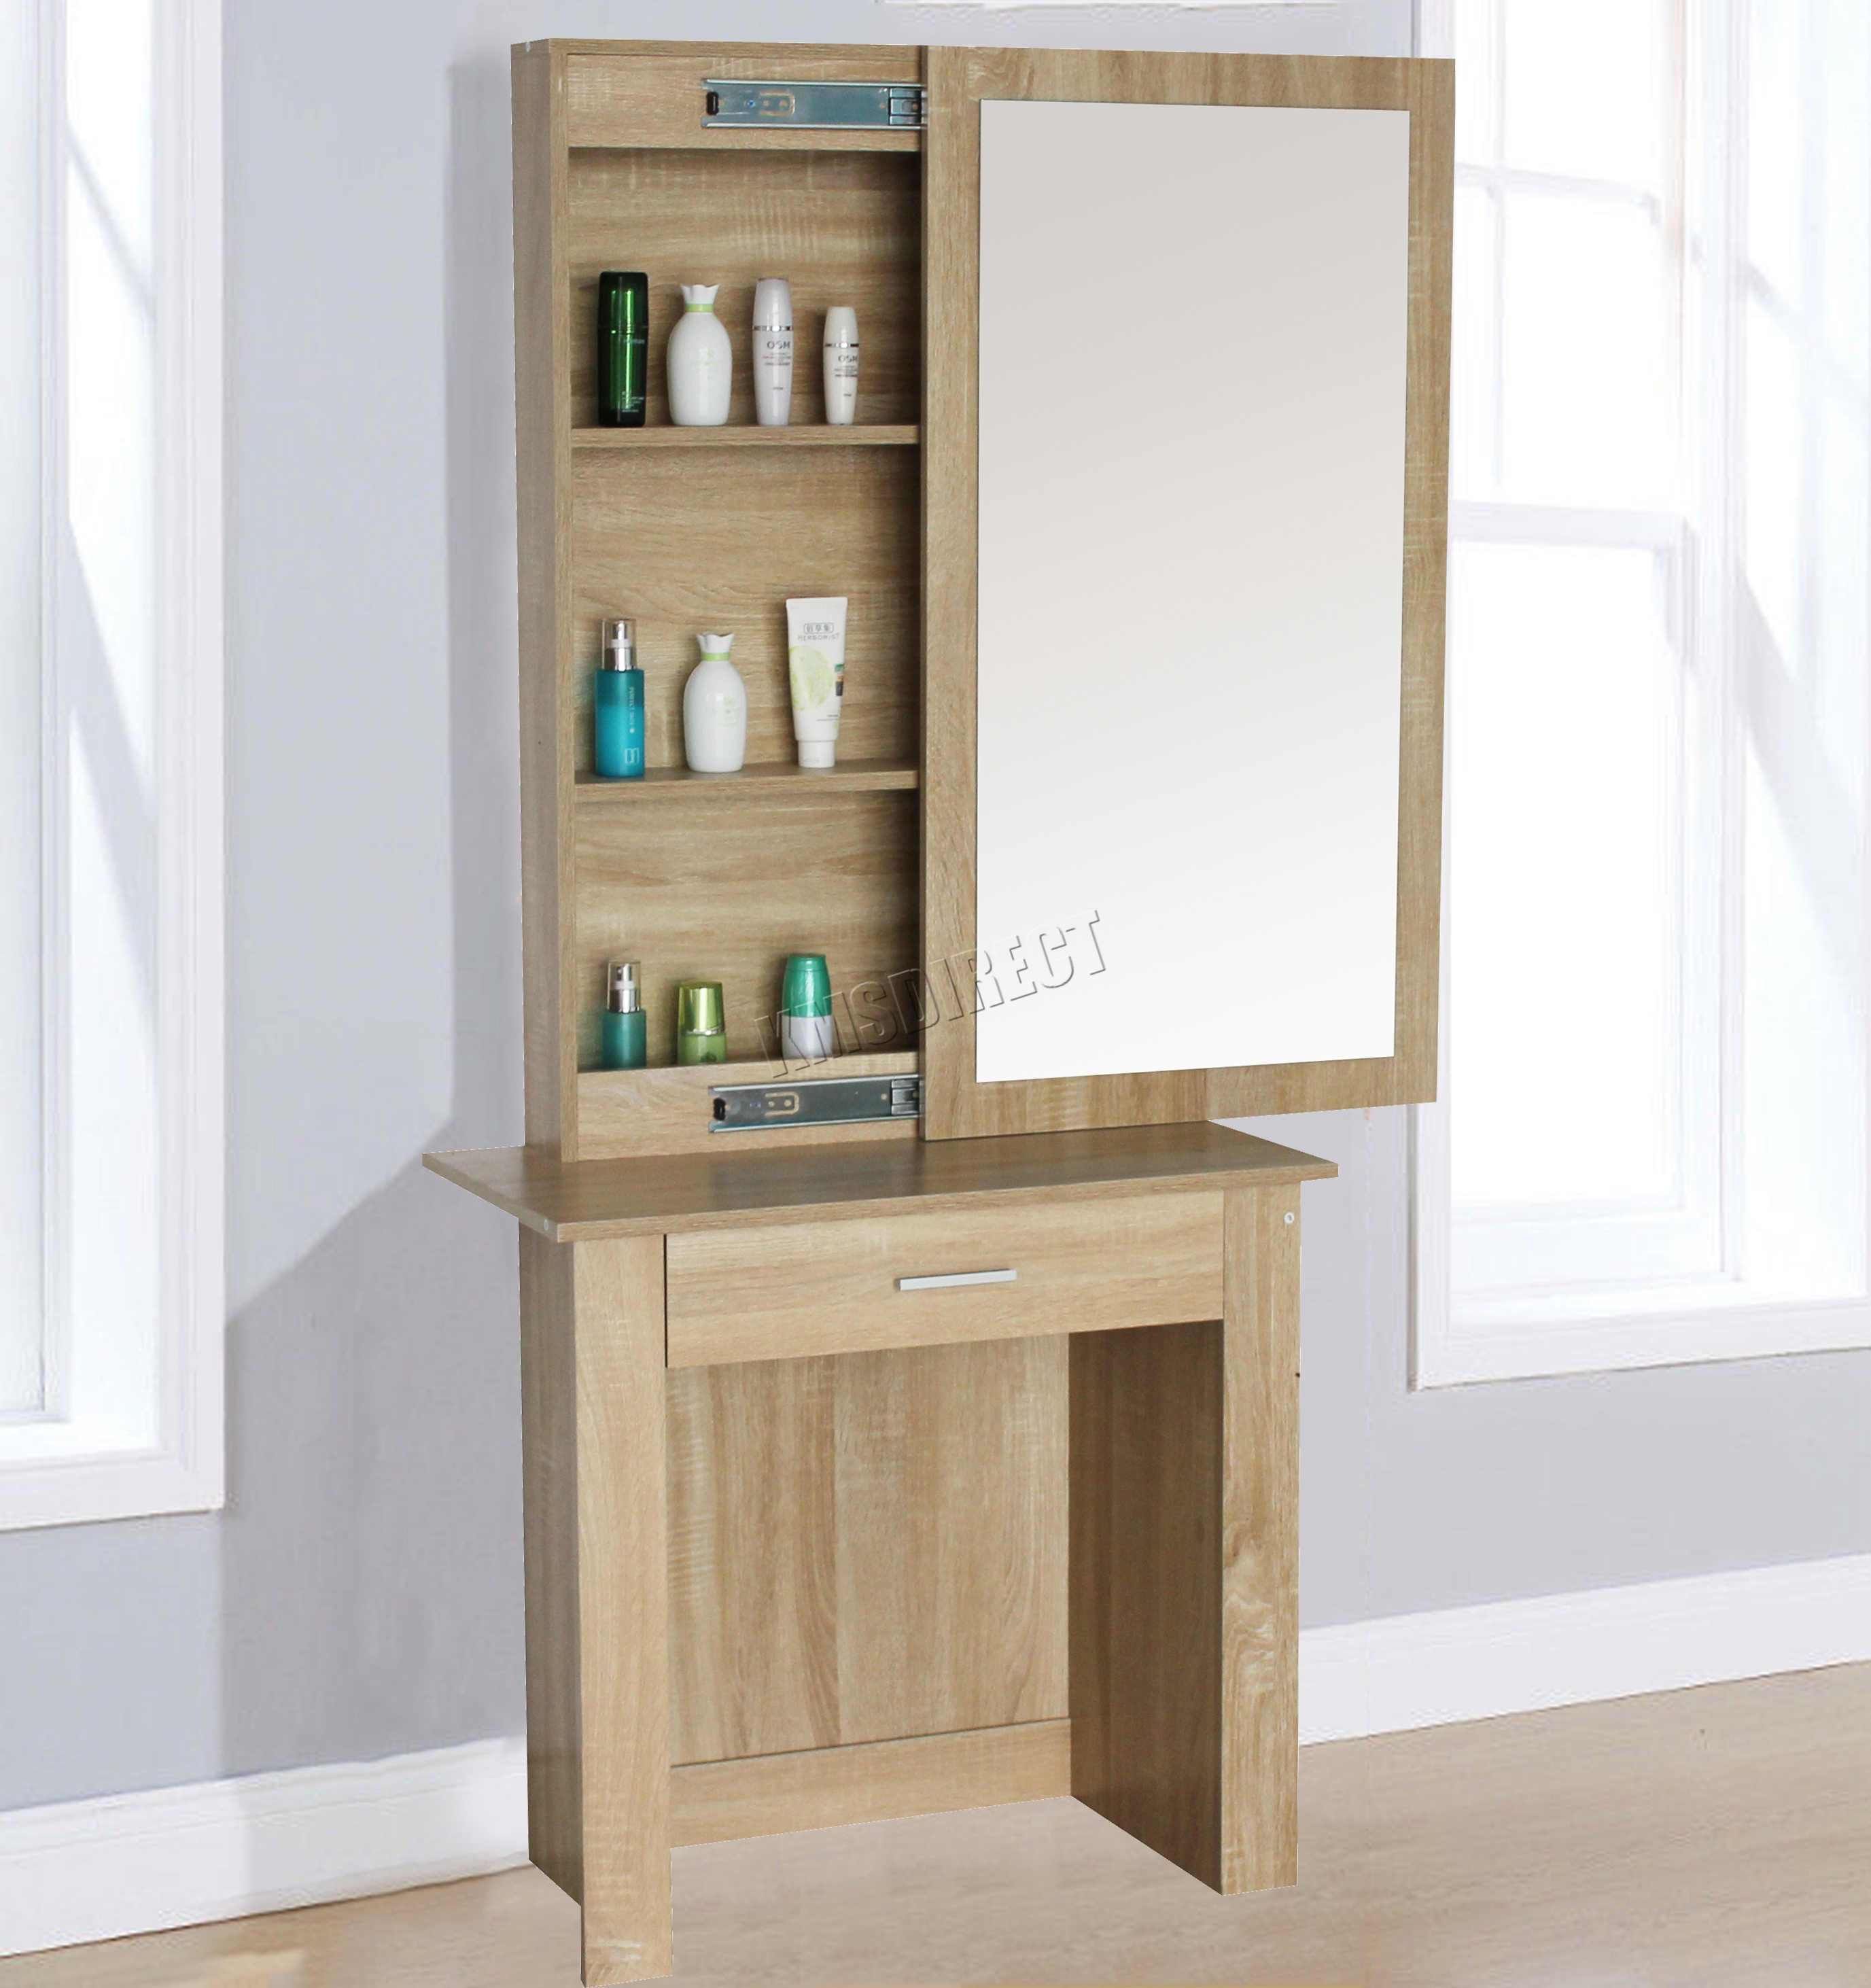 FoxHunter Wooden Makeup Jewelry Dressing Table With ...